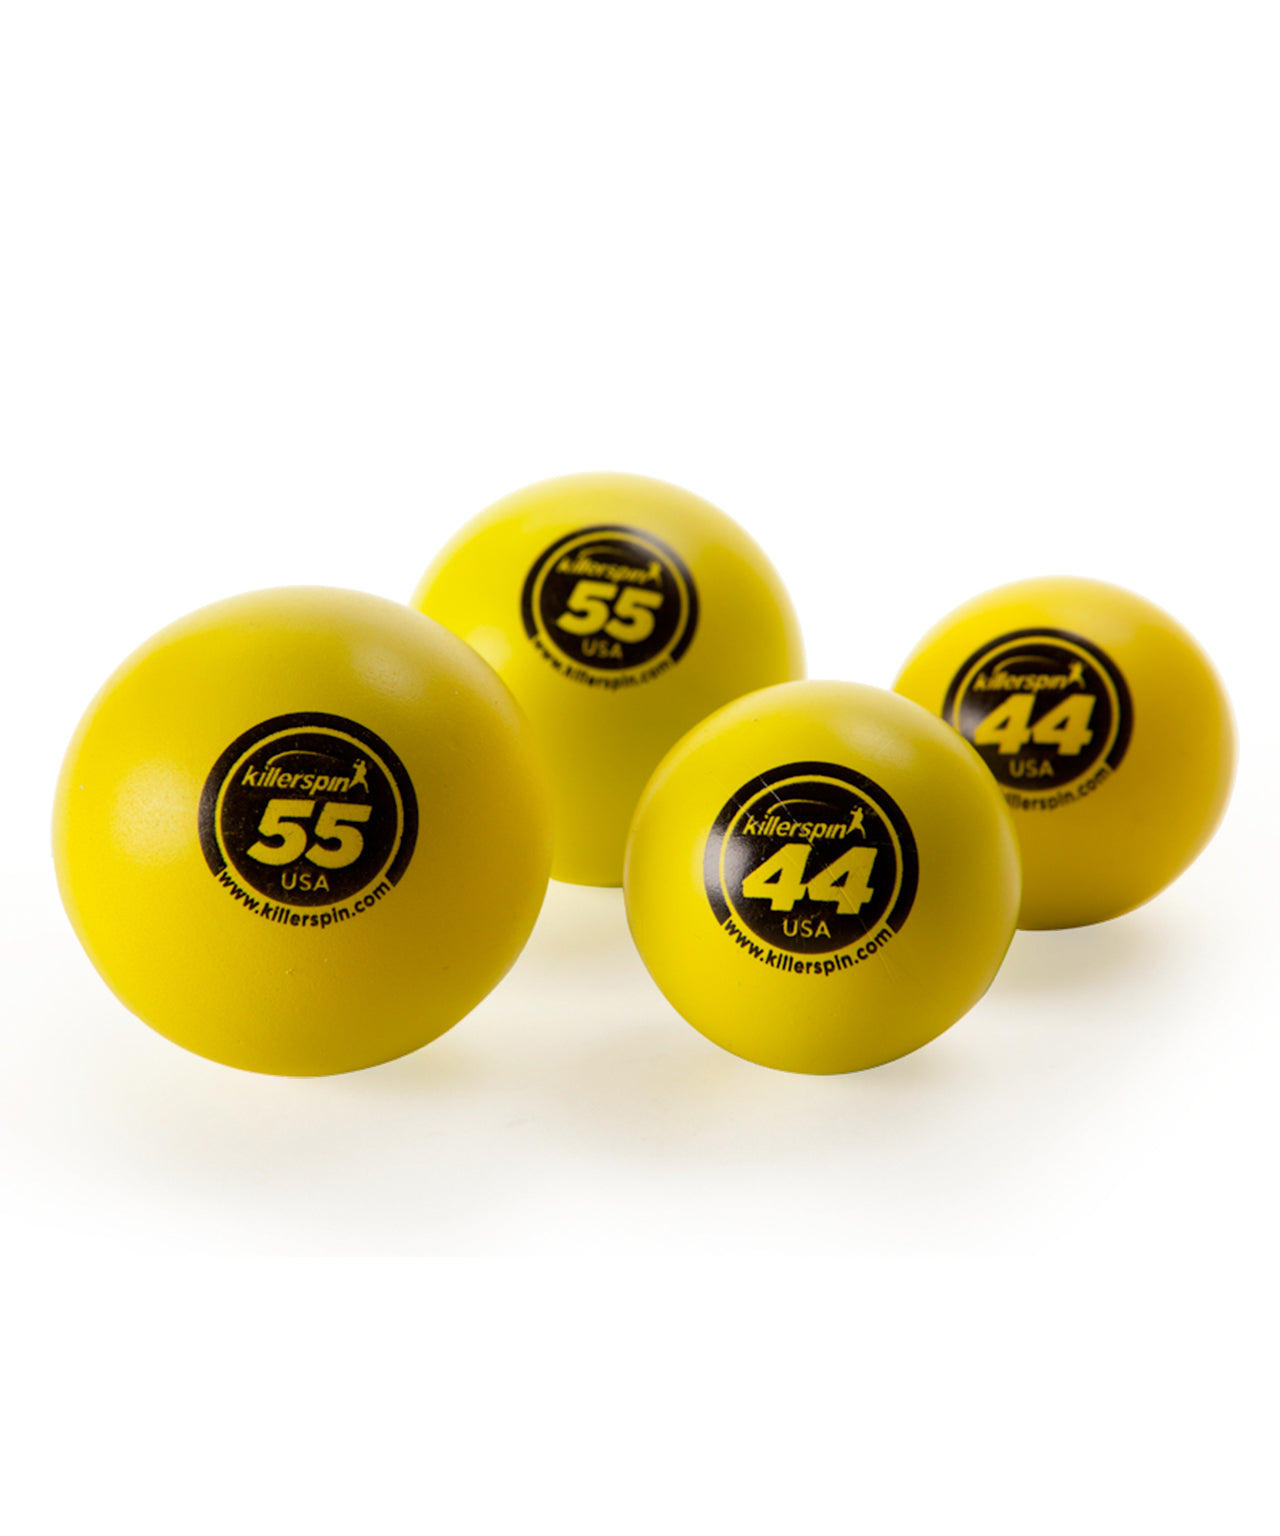 Killerspin 44mm and 55mm Ping Pong Balls - Multiple Balls